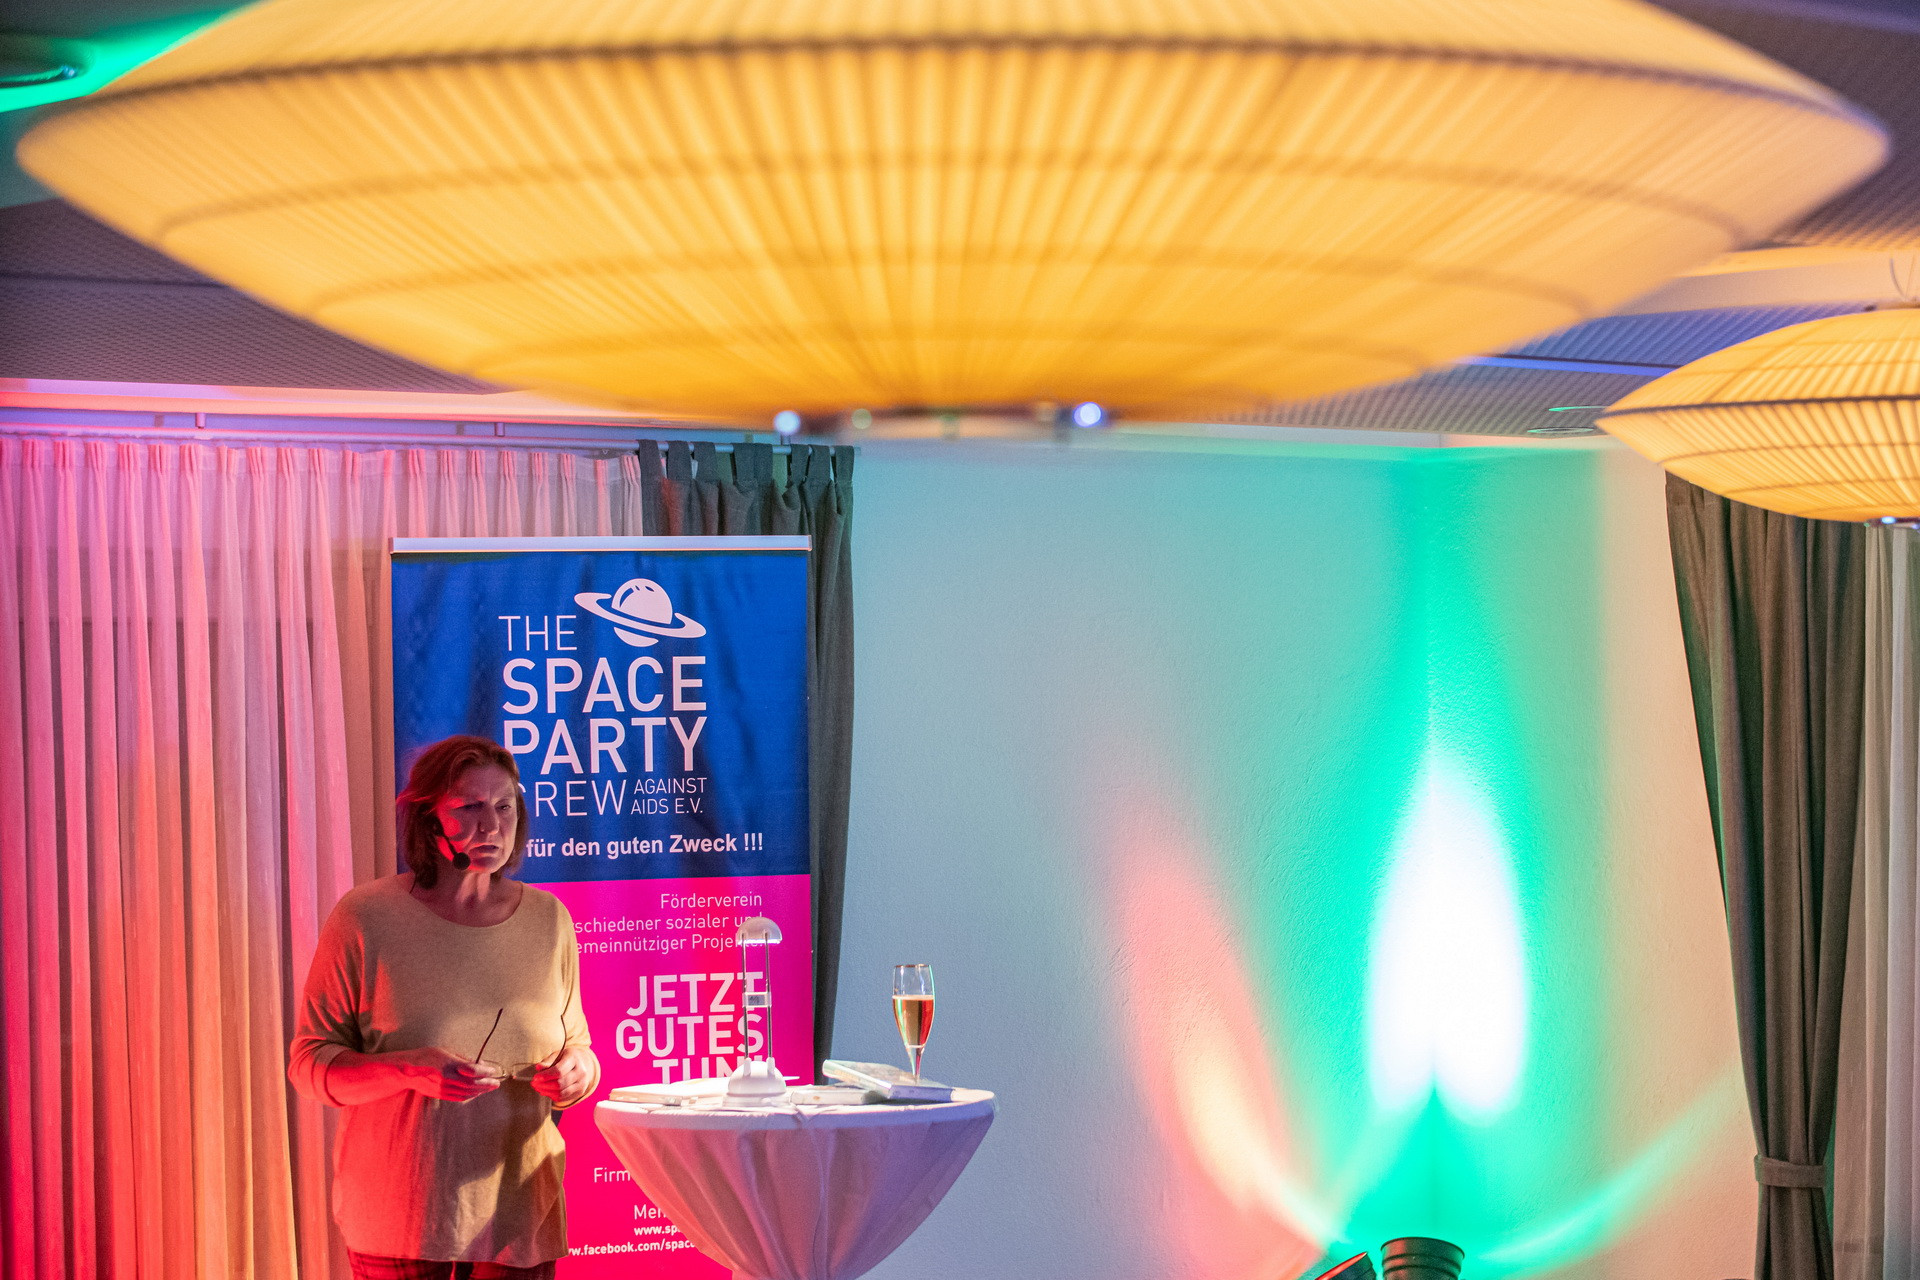 Lesung mit Birgit Fischer, achtmalige Olympiasiegerin im Kanusport, Veranstaltung der Space Party Crew against AIDS e.V., in Gaststätte zur krone, Wetzlar-Münchholzhausen, 28.09.2019. Foto: Christian Lademann